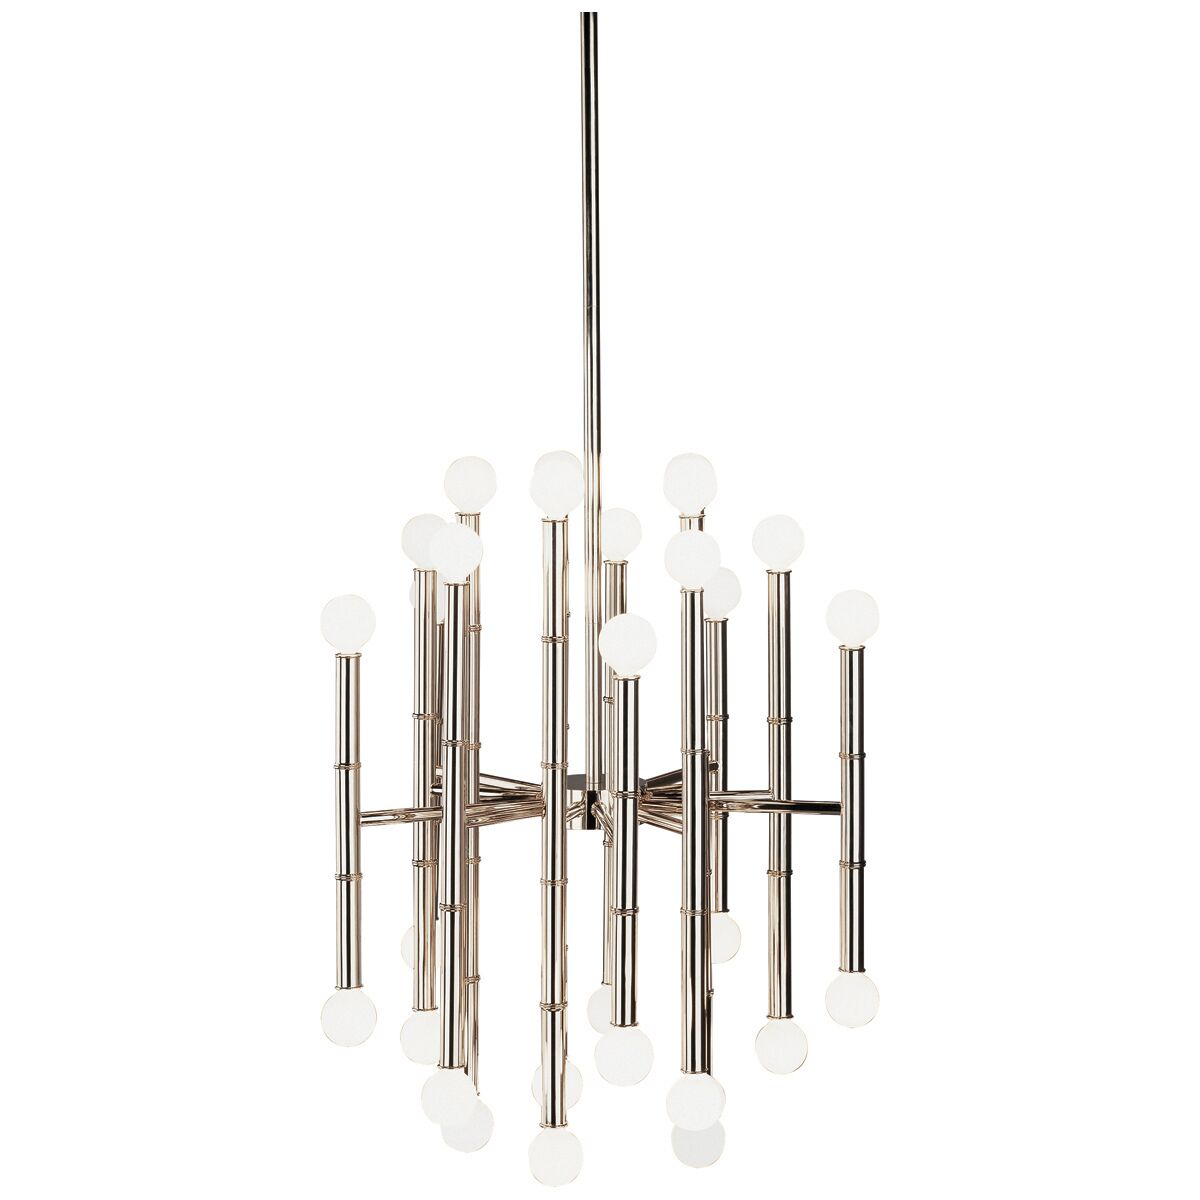 Jonathan Adler Meurice 30-Light Chandelier Finish: Polished Nickel